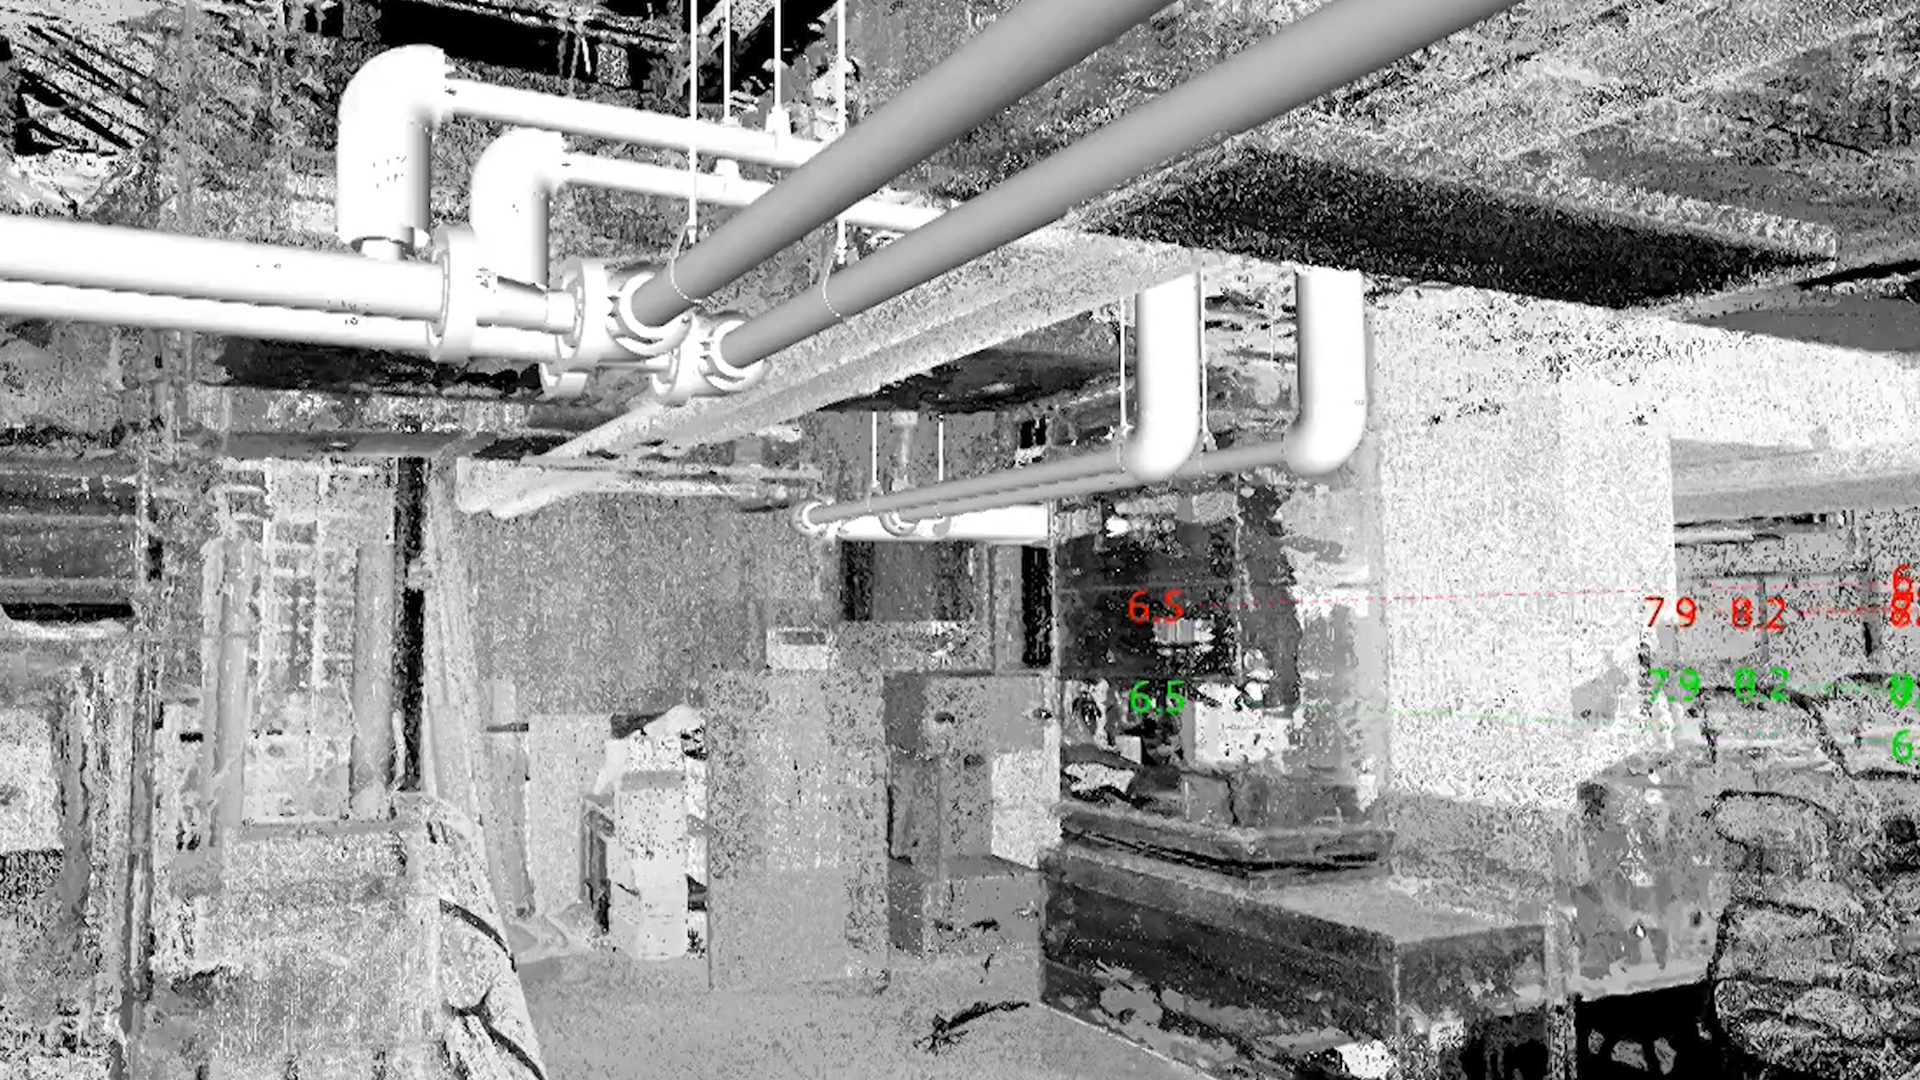 Pipe modeling in point cloud